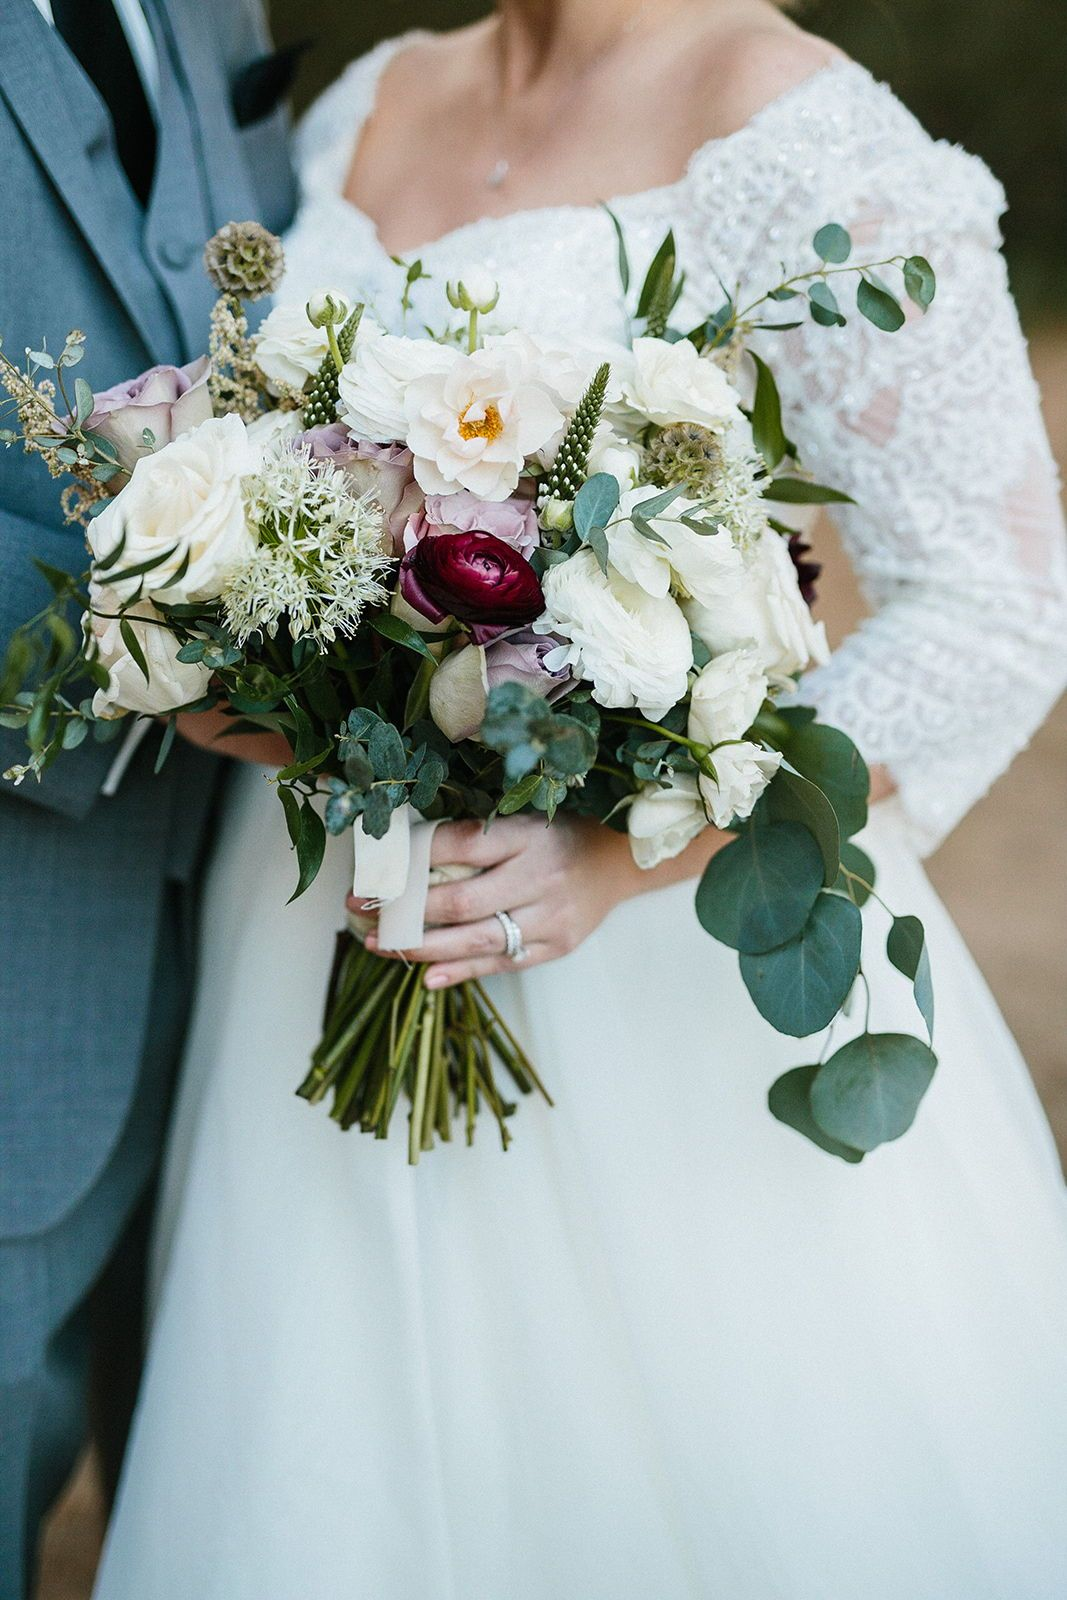 Winter Wedding Bouquet At Arizona Wedding Featuring Eucalyptus Greenery Roses Ranunculus And Winter Wedding Bouquet Red Wedding Flowers Bridal Bouquet Spring